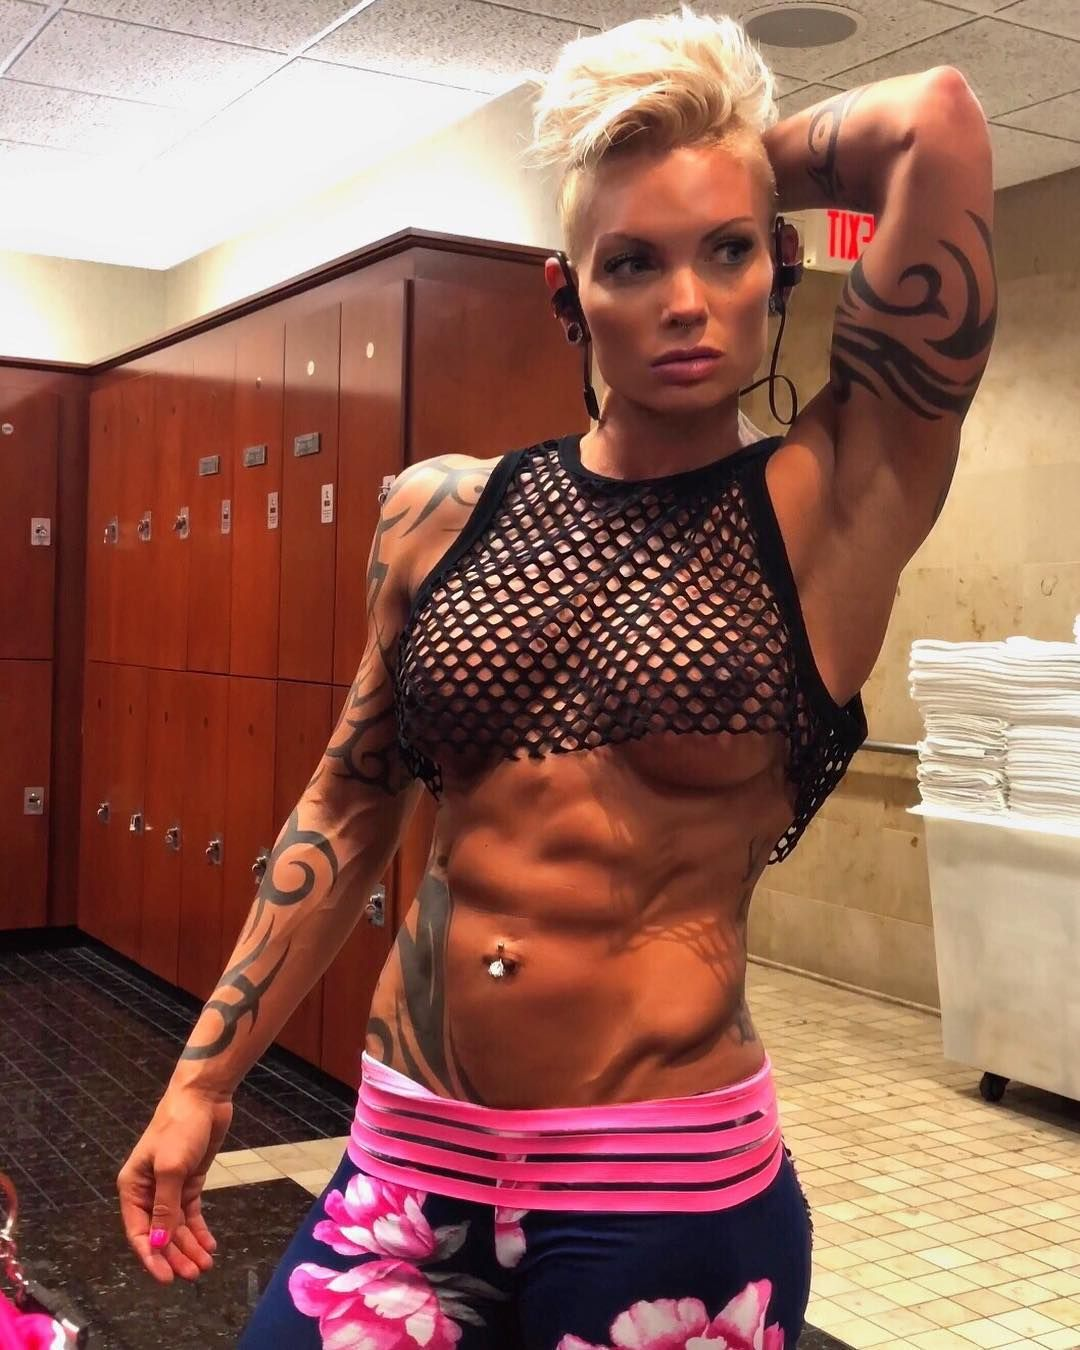 Topless Images Nahla R. Monroe naked photo 2017